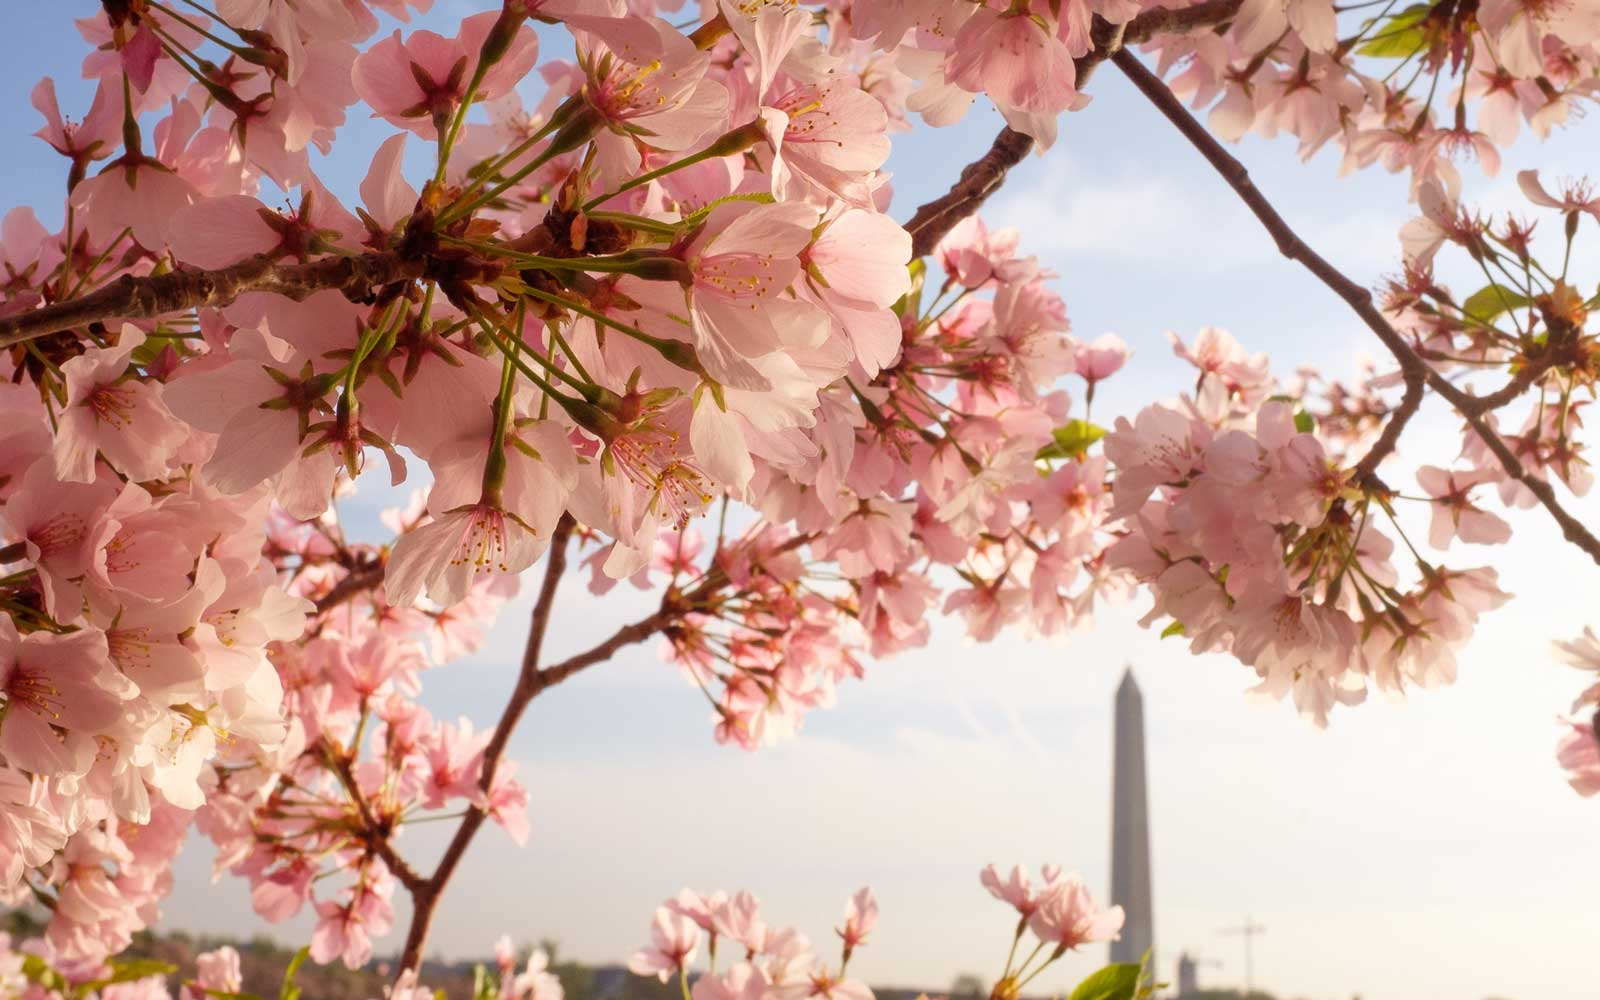 Washington D.C. Cherry Blossoms with Washington Monument in Background